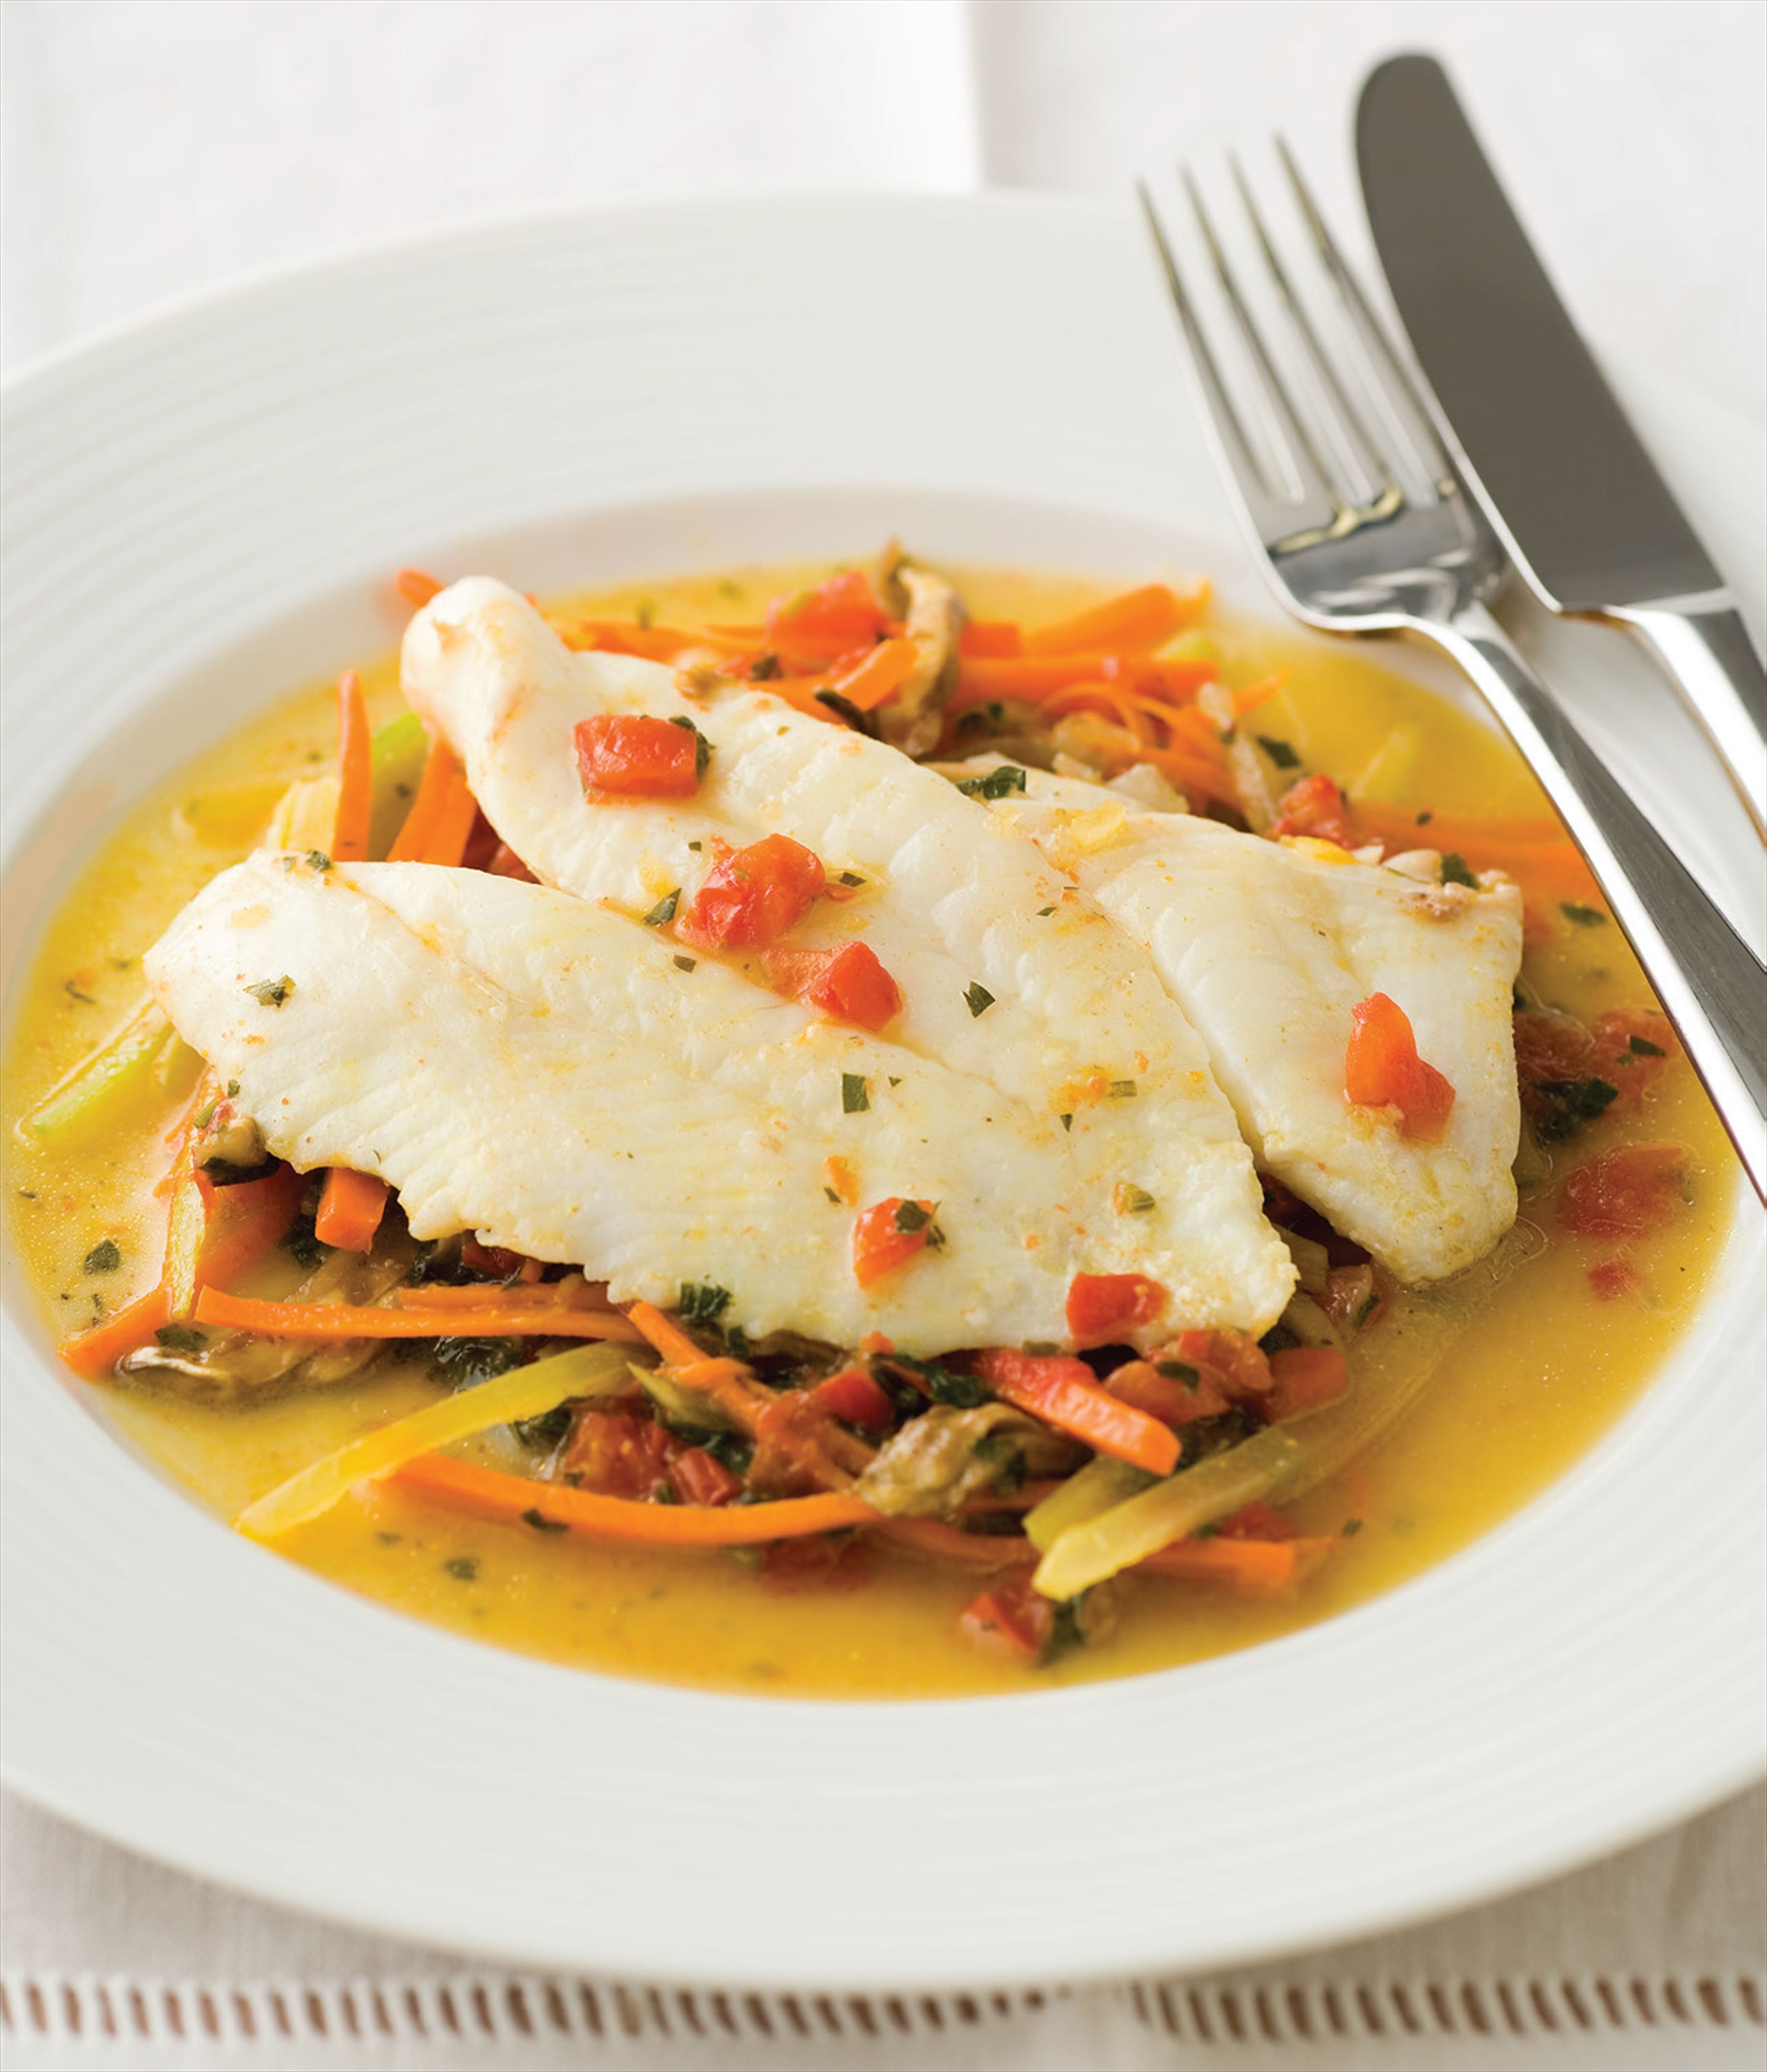 Steamed John Dory with a vegetable julienne